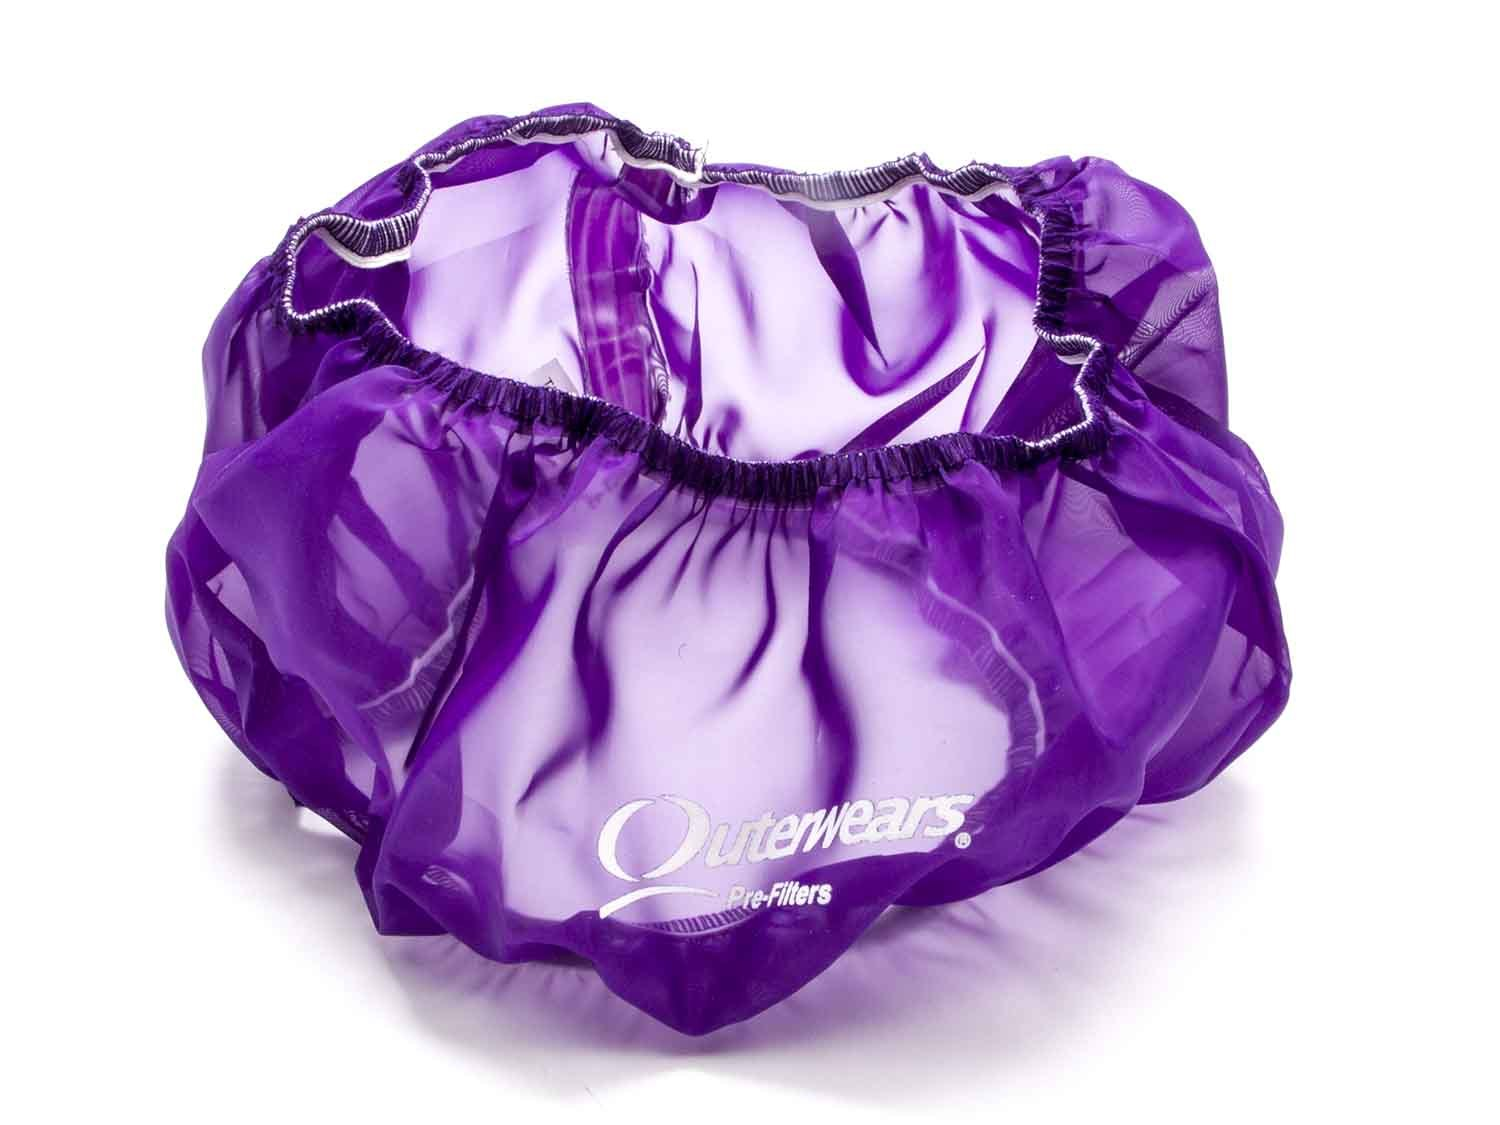 Outerwears 10-1002-07 Air Filter Wrap, Pre Filter, 14 in OD, 4 in Tall, Polyester, Purple, Each